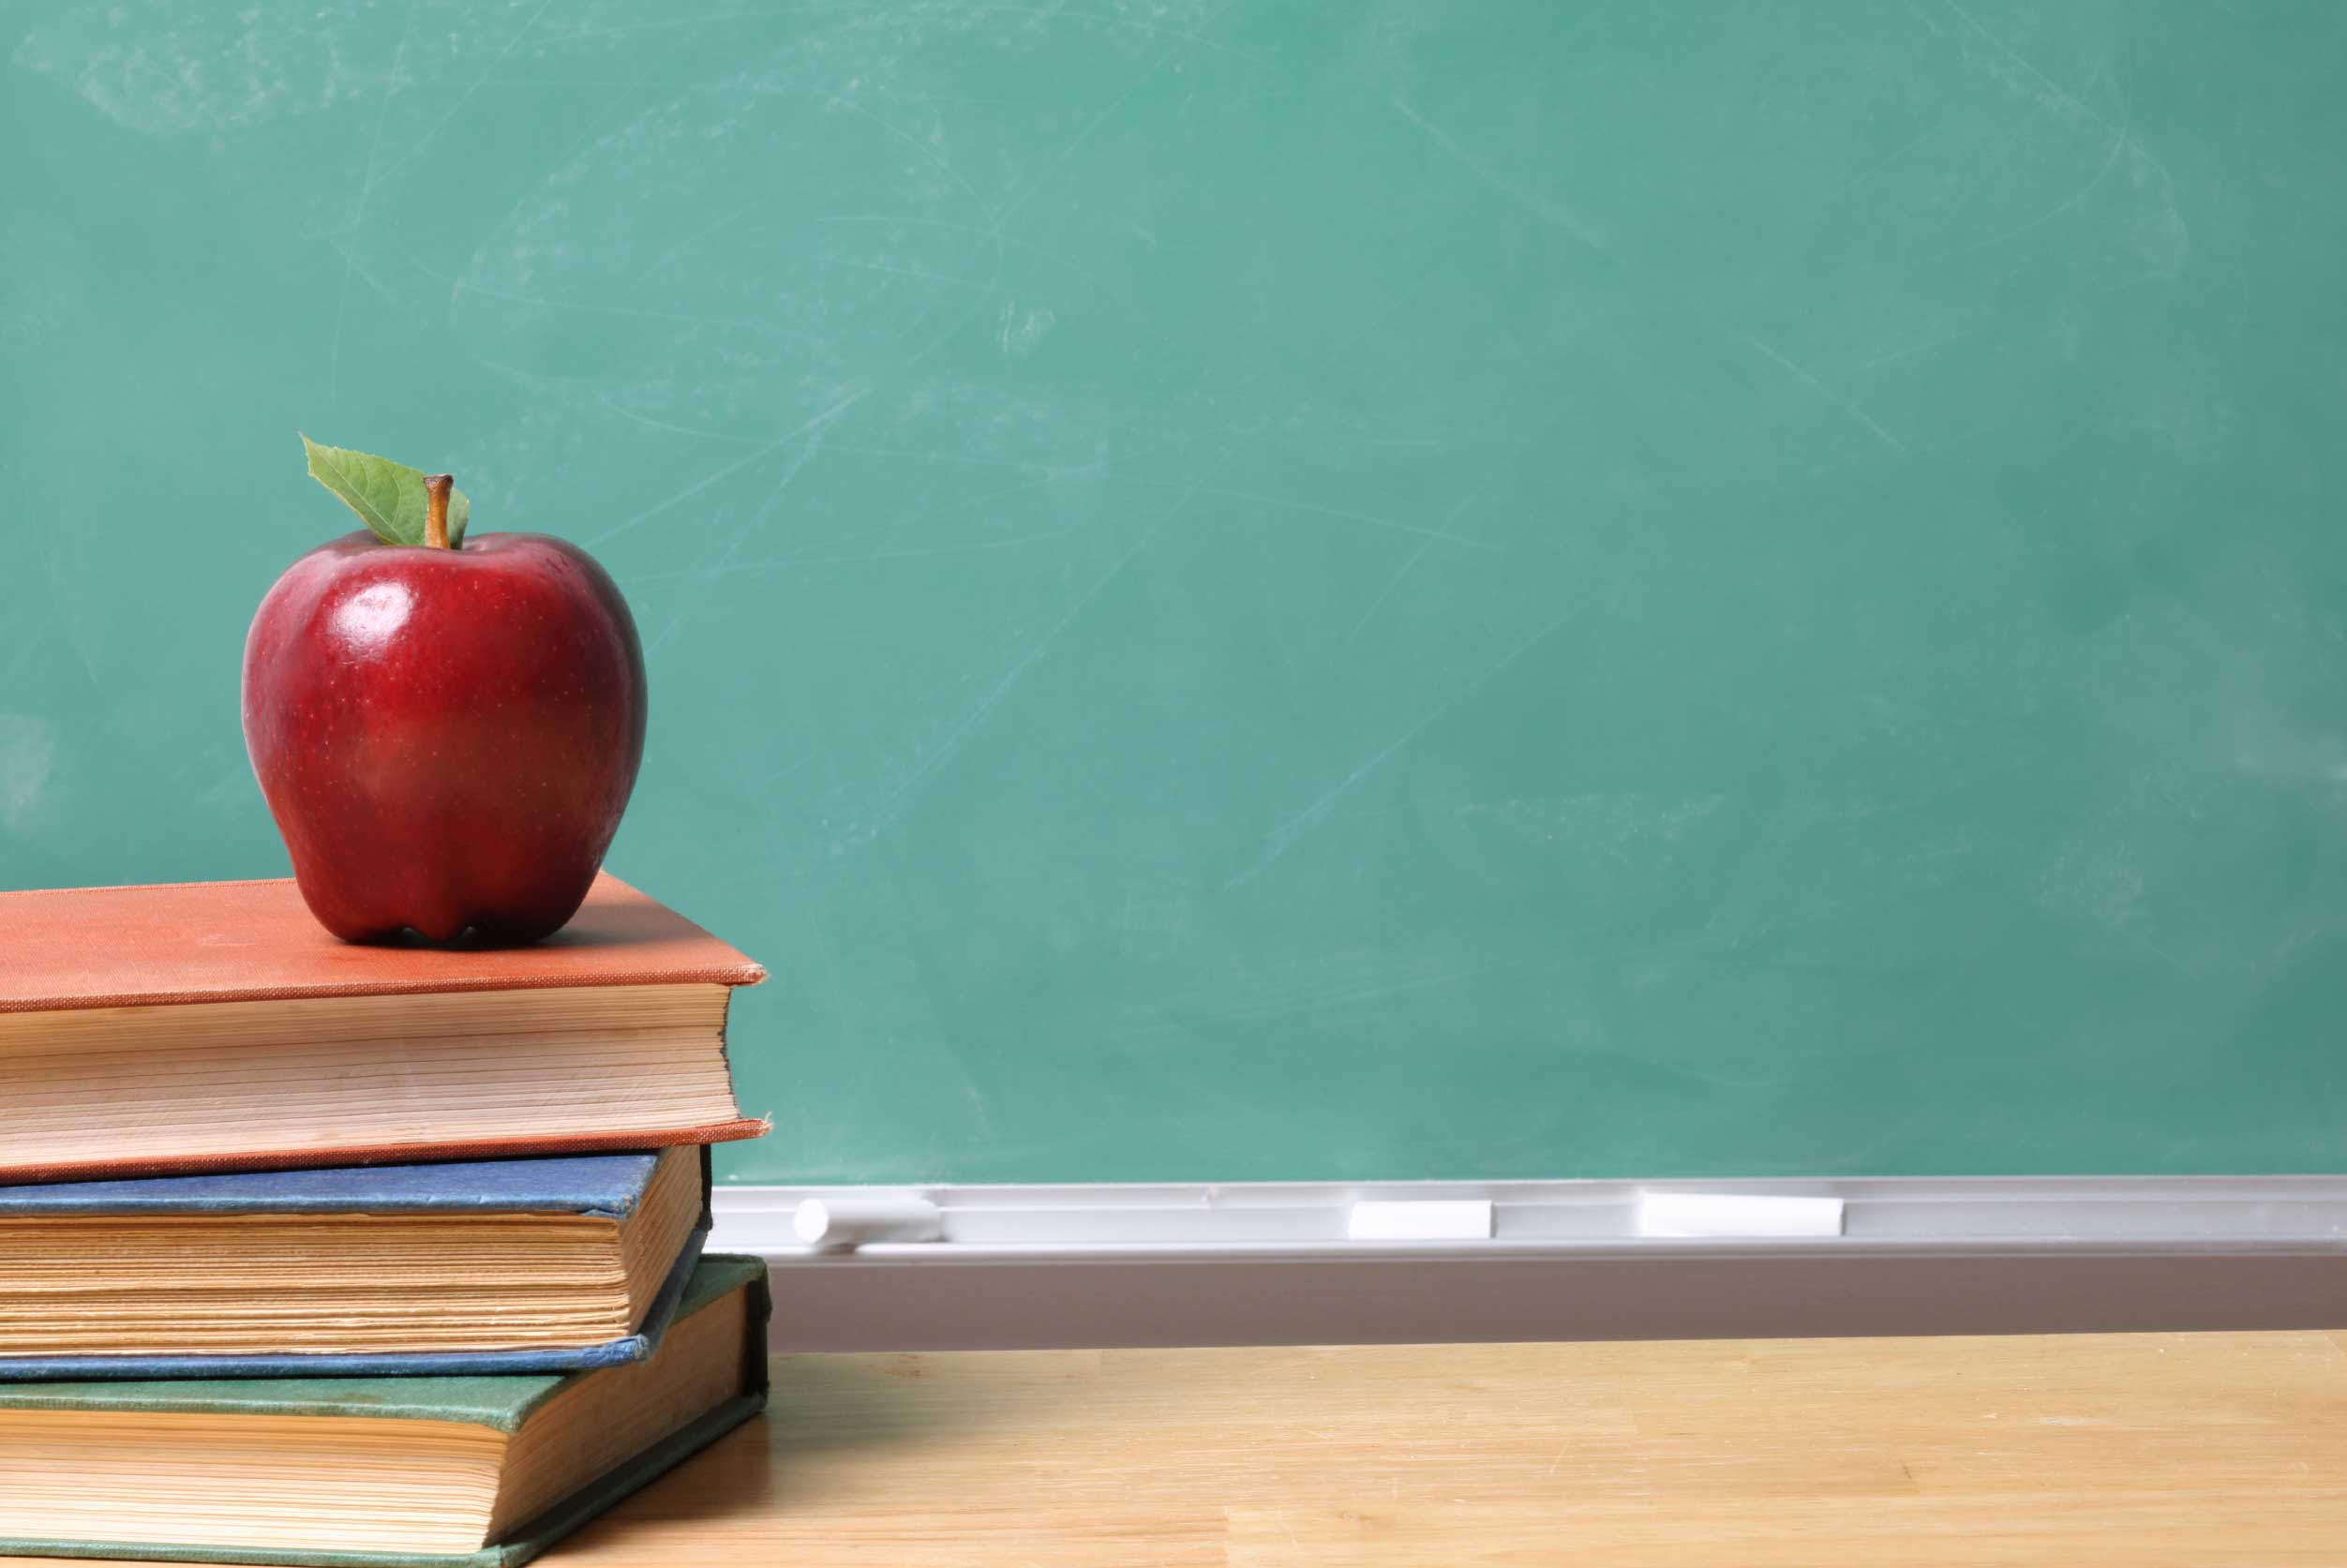 2014 Sales Tax Holiday Weekend Dates by State for Back to School